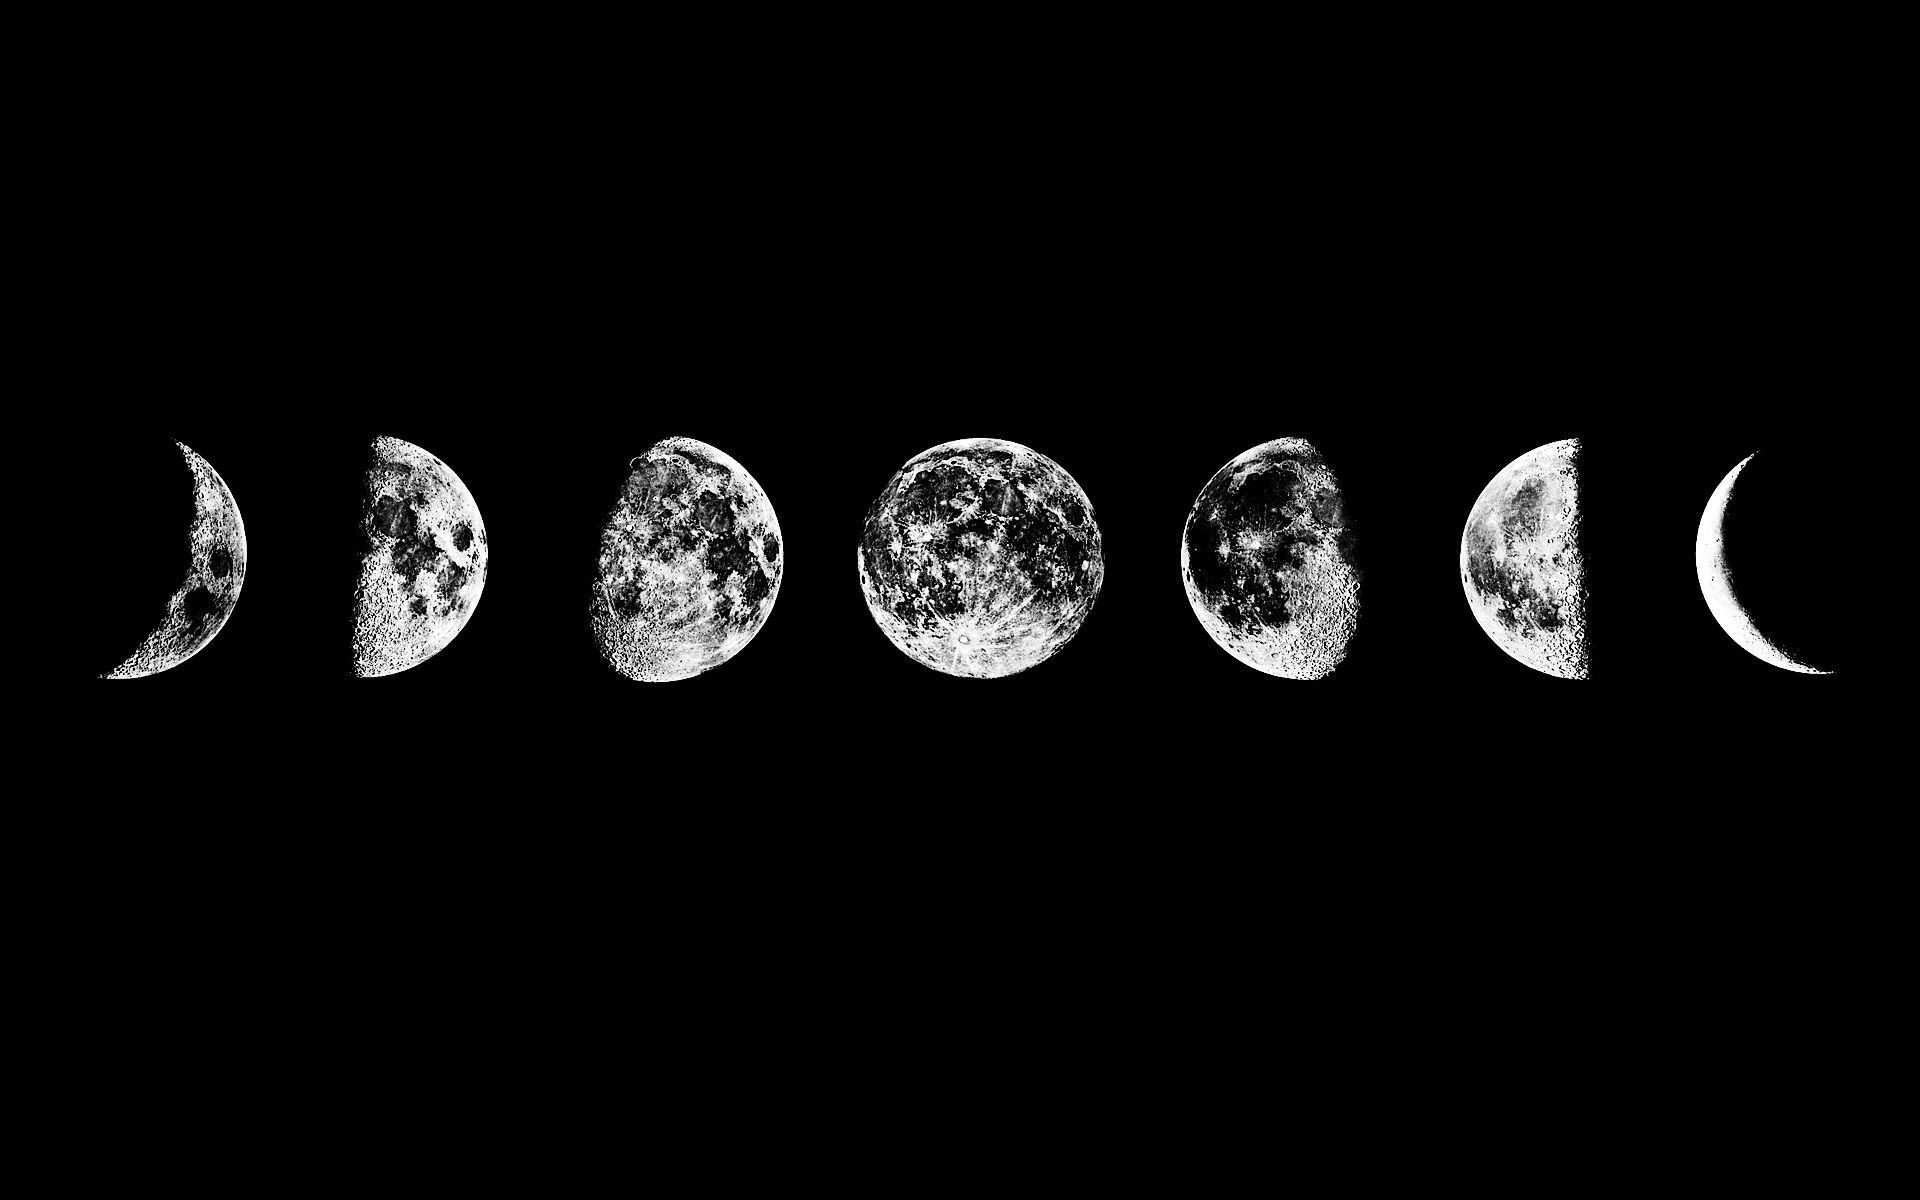 1920x1200 tumblr pictures hipster moon - Google Search More | Backrounds ...